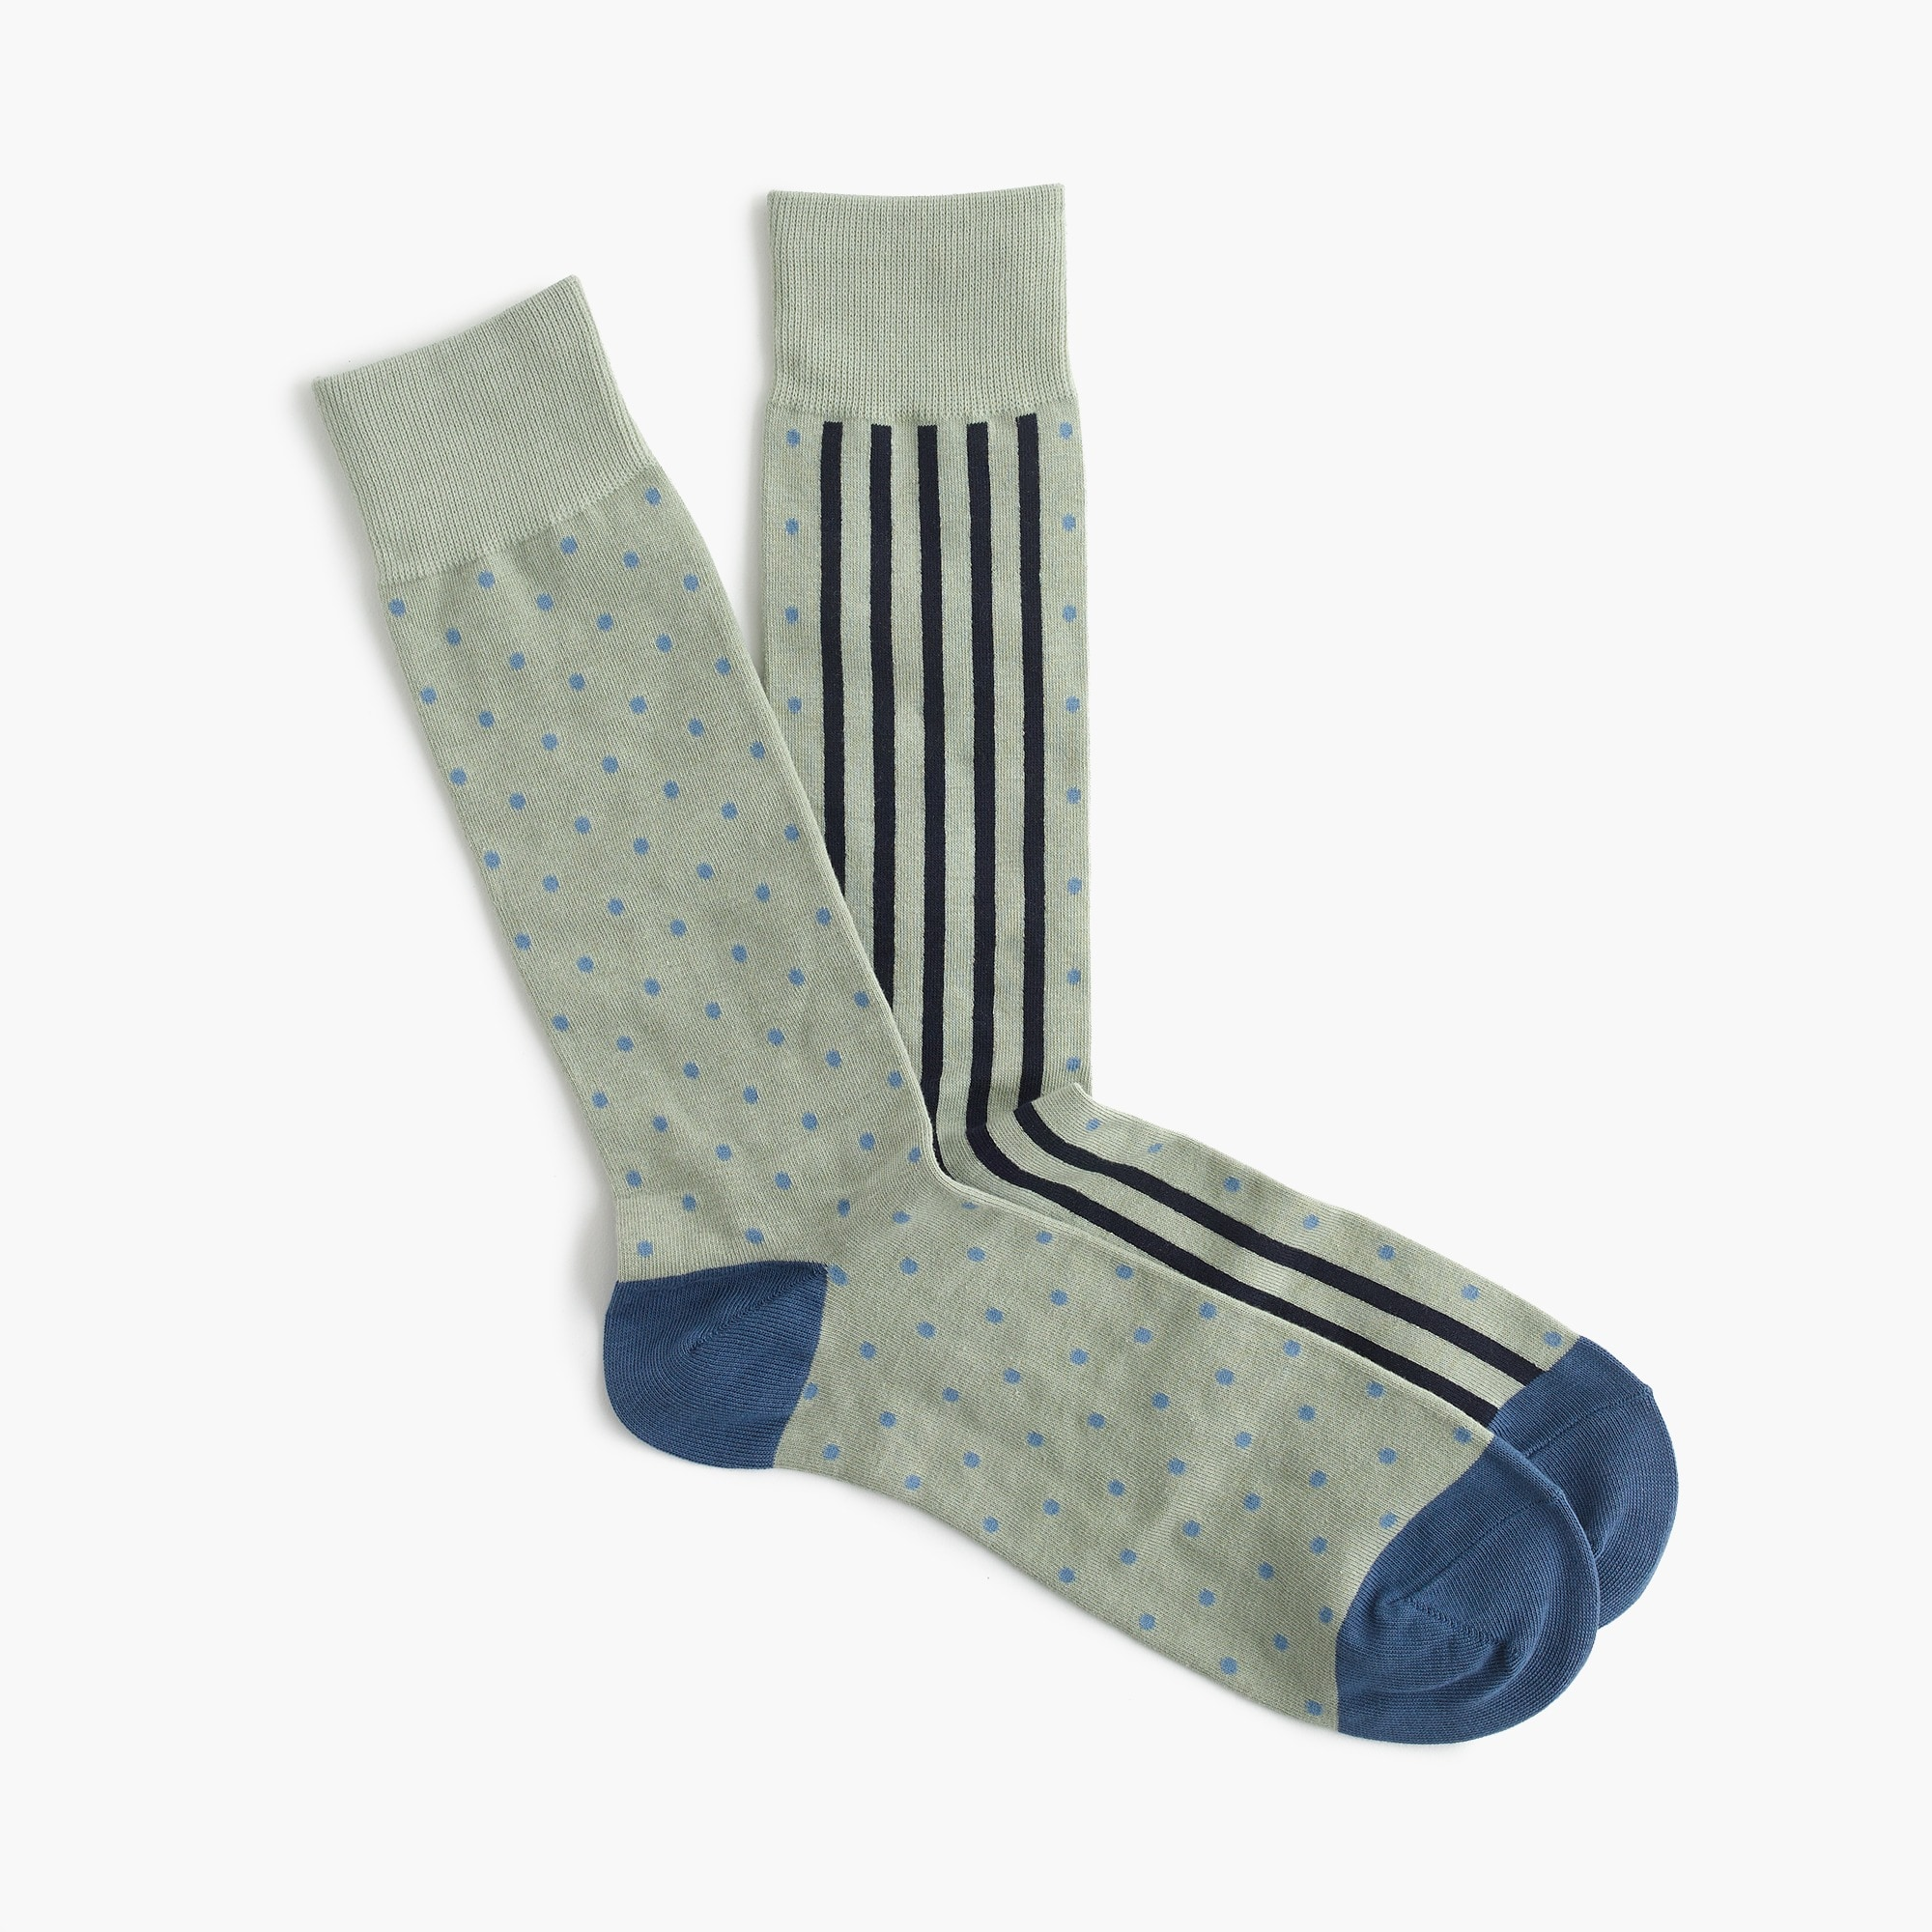 mens Striped and dotted socks